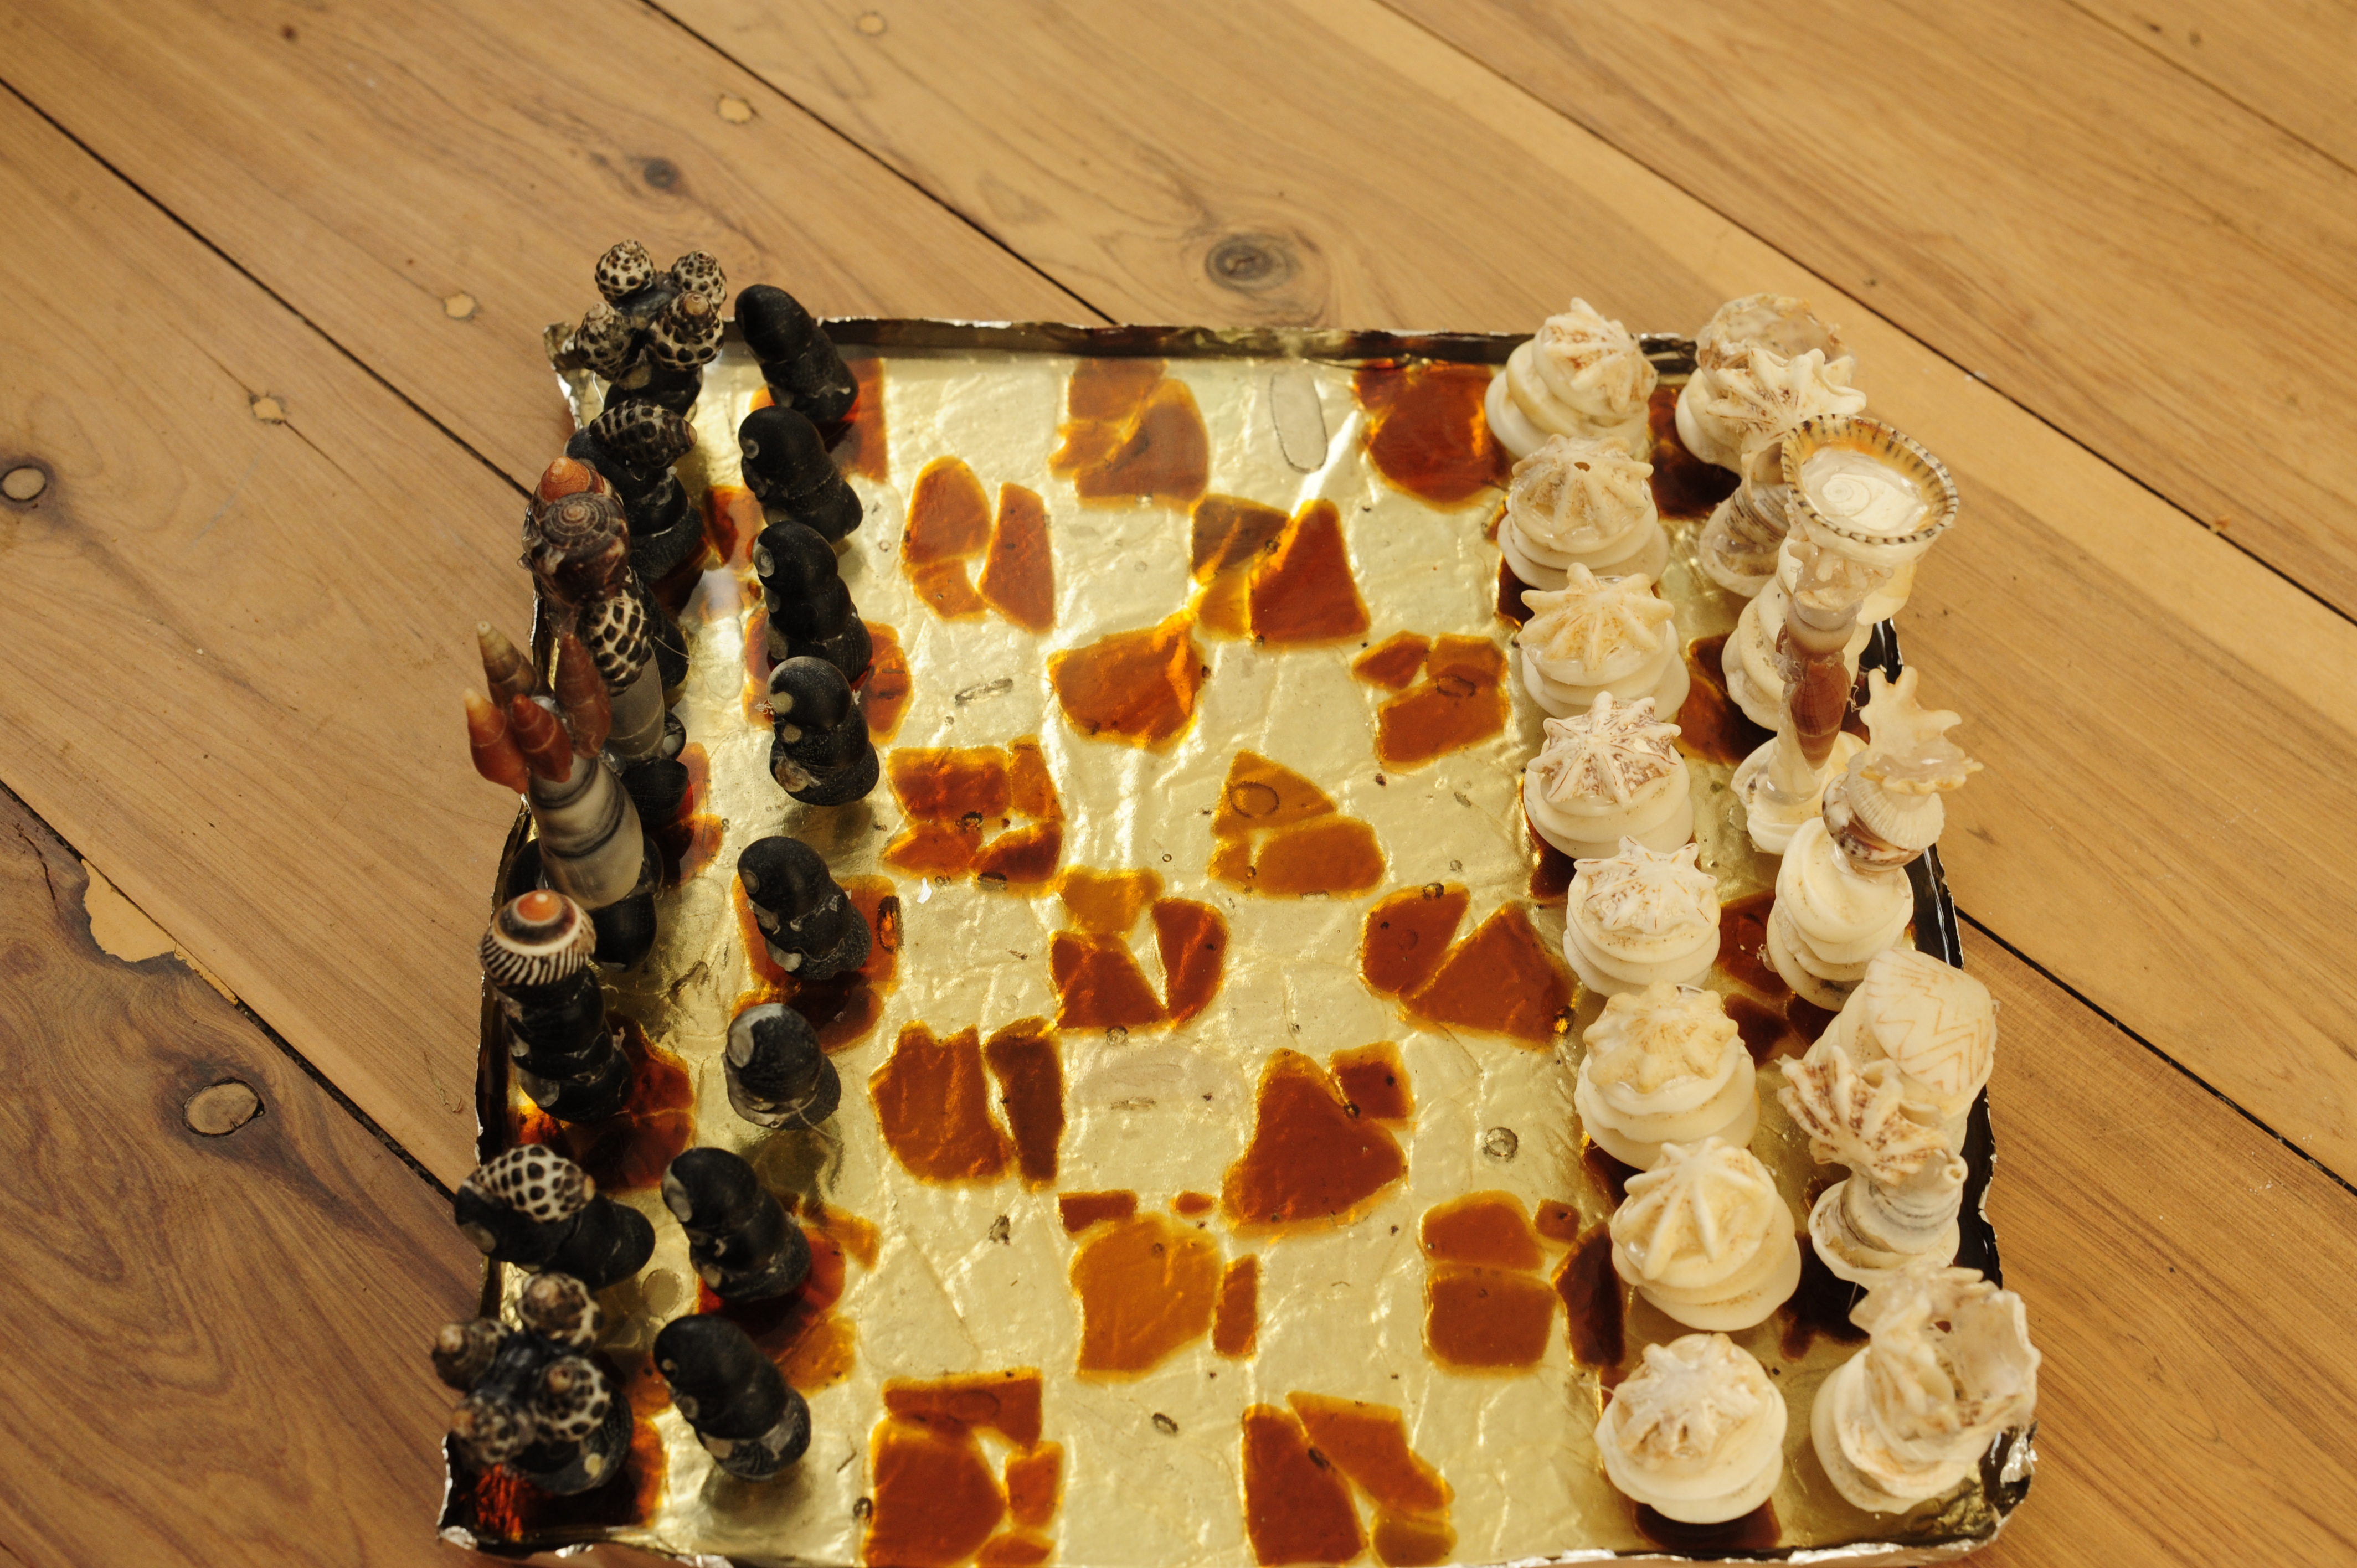 Picture of Chess Set Made From the Sea